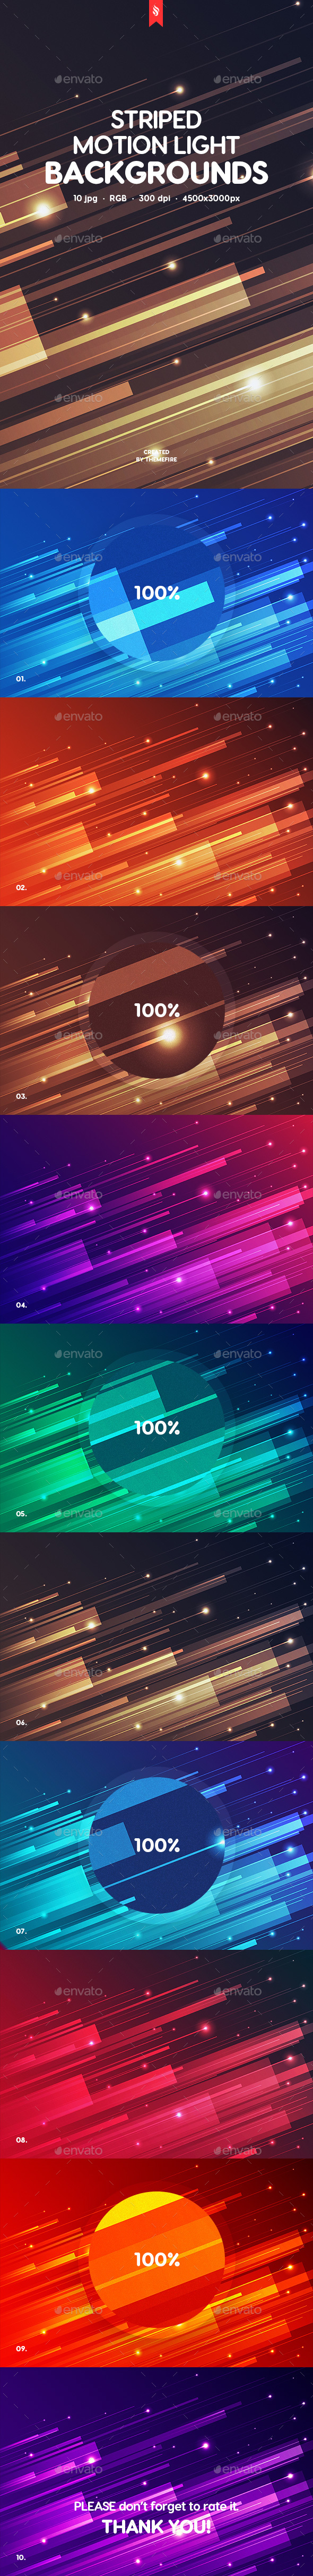 Striped Motion Light Backgrounds - Abstract Backgrounds